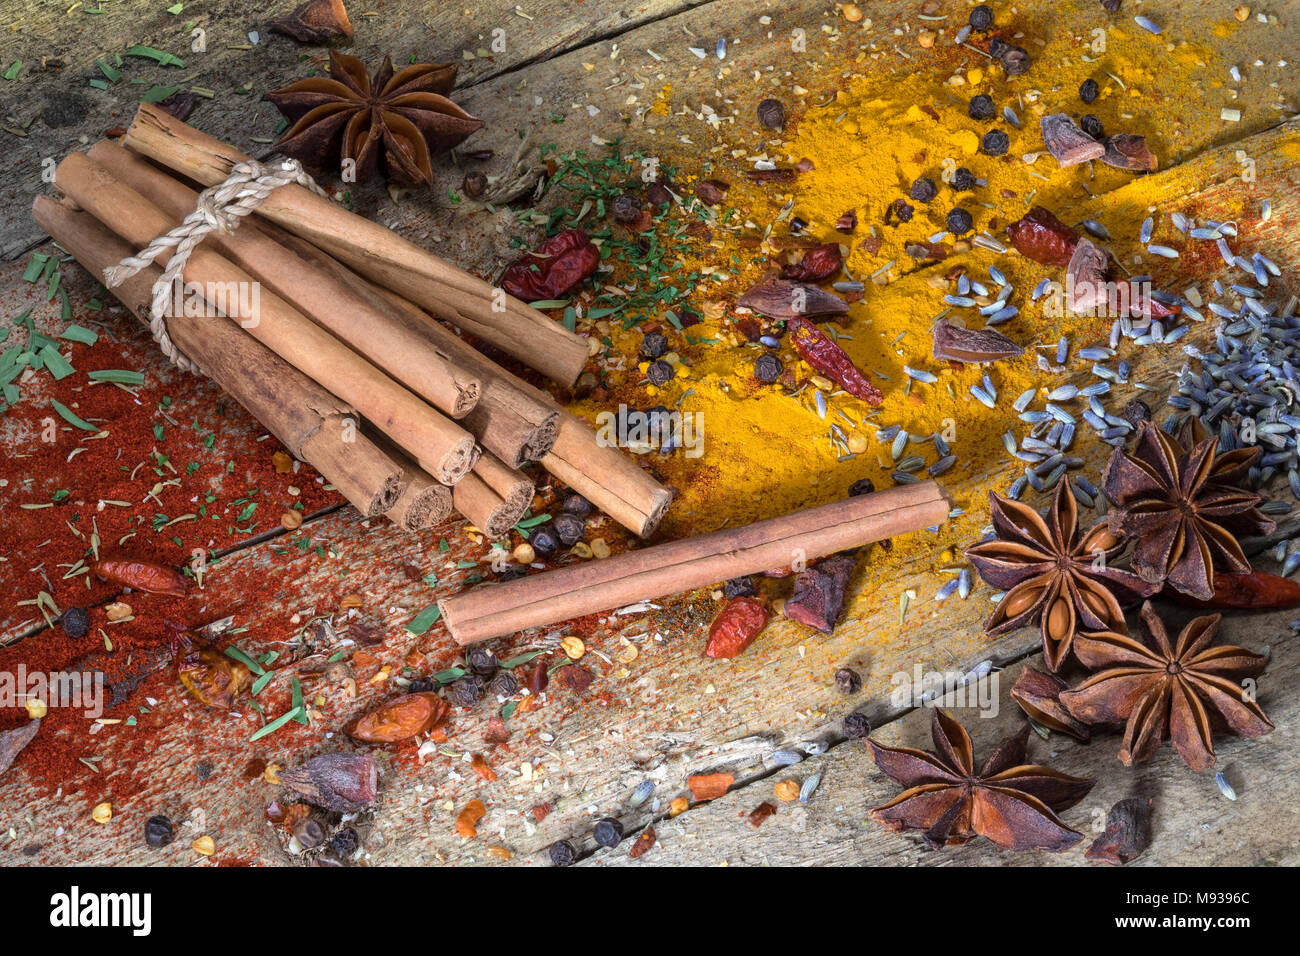 Cinnamon sticks - Herbs and Spices on a rustic farmhouse table. - Stock Image